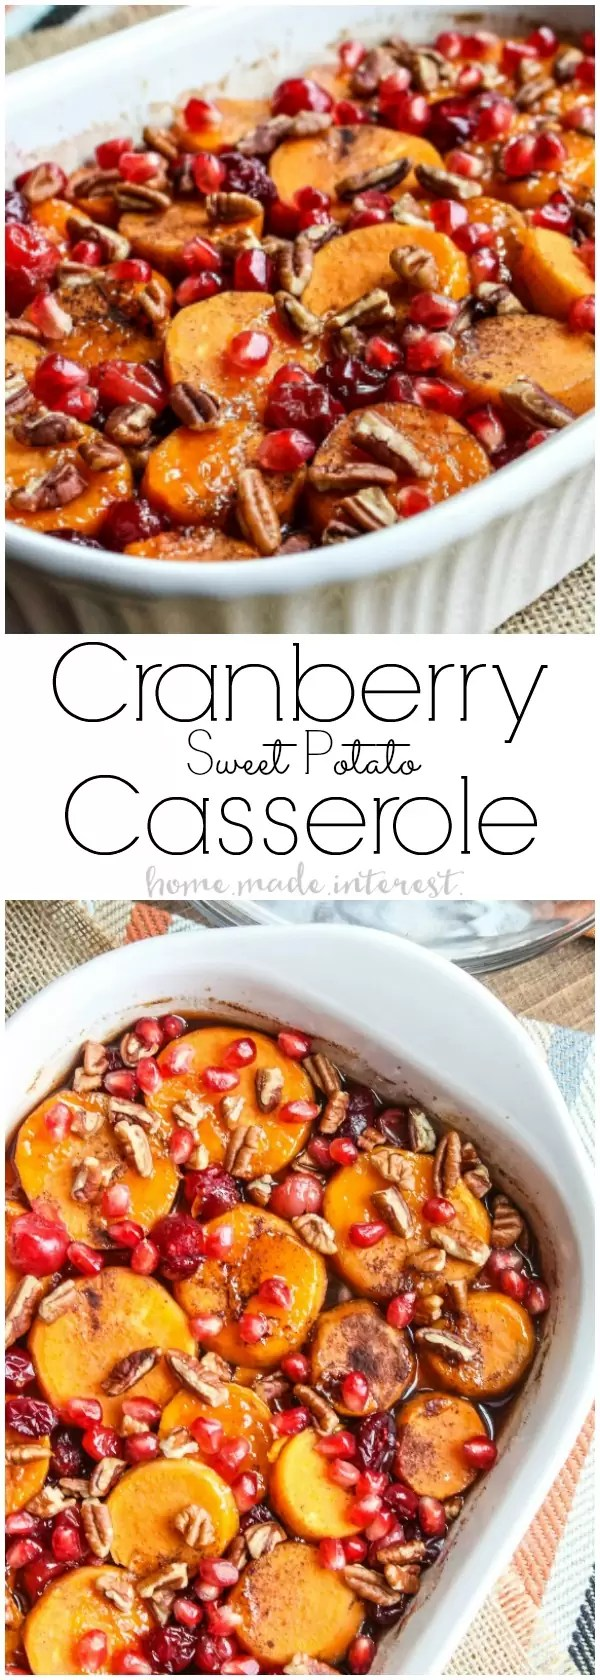 Layers of sweet potatoes, brown sugar, marshmallows, cranberries, pecan, and pomegranates make this Cranberry Sweet Potato Casserole perfect as a Thanksgiving side dish or a Christmas side dish. Everyone is going to love this easy sweet potato casserole recipe!